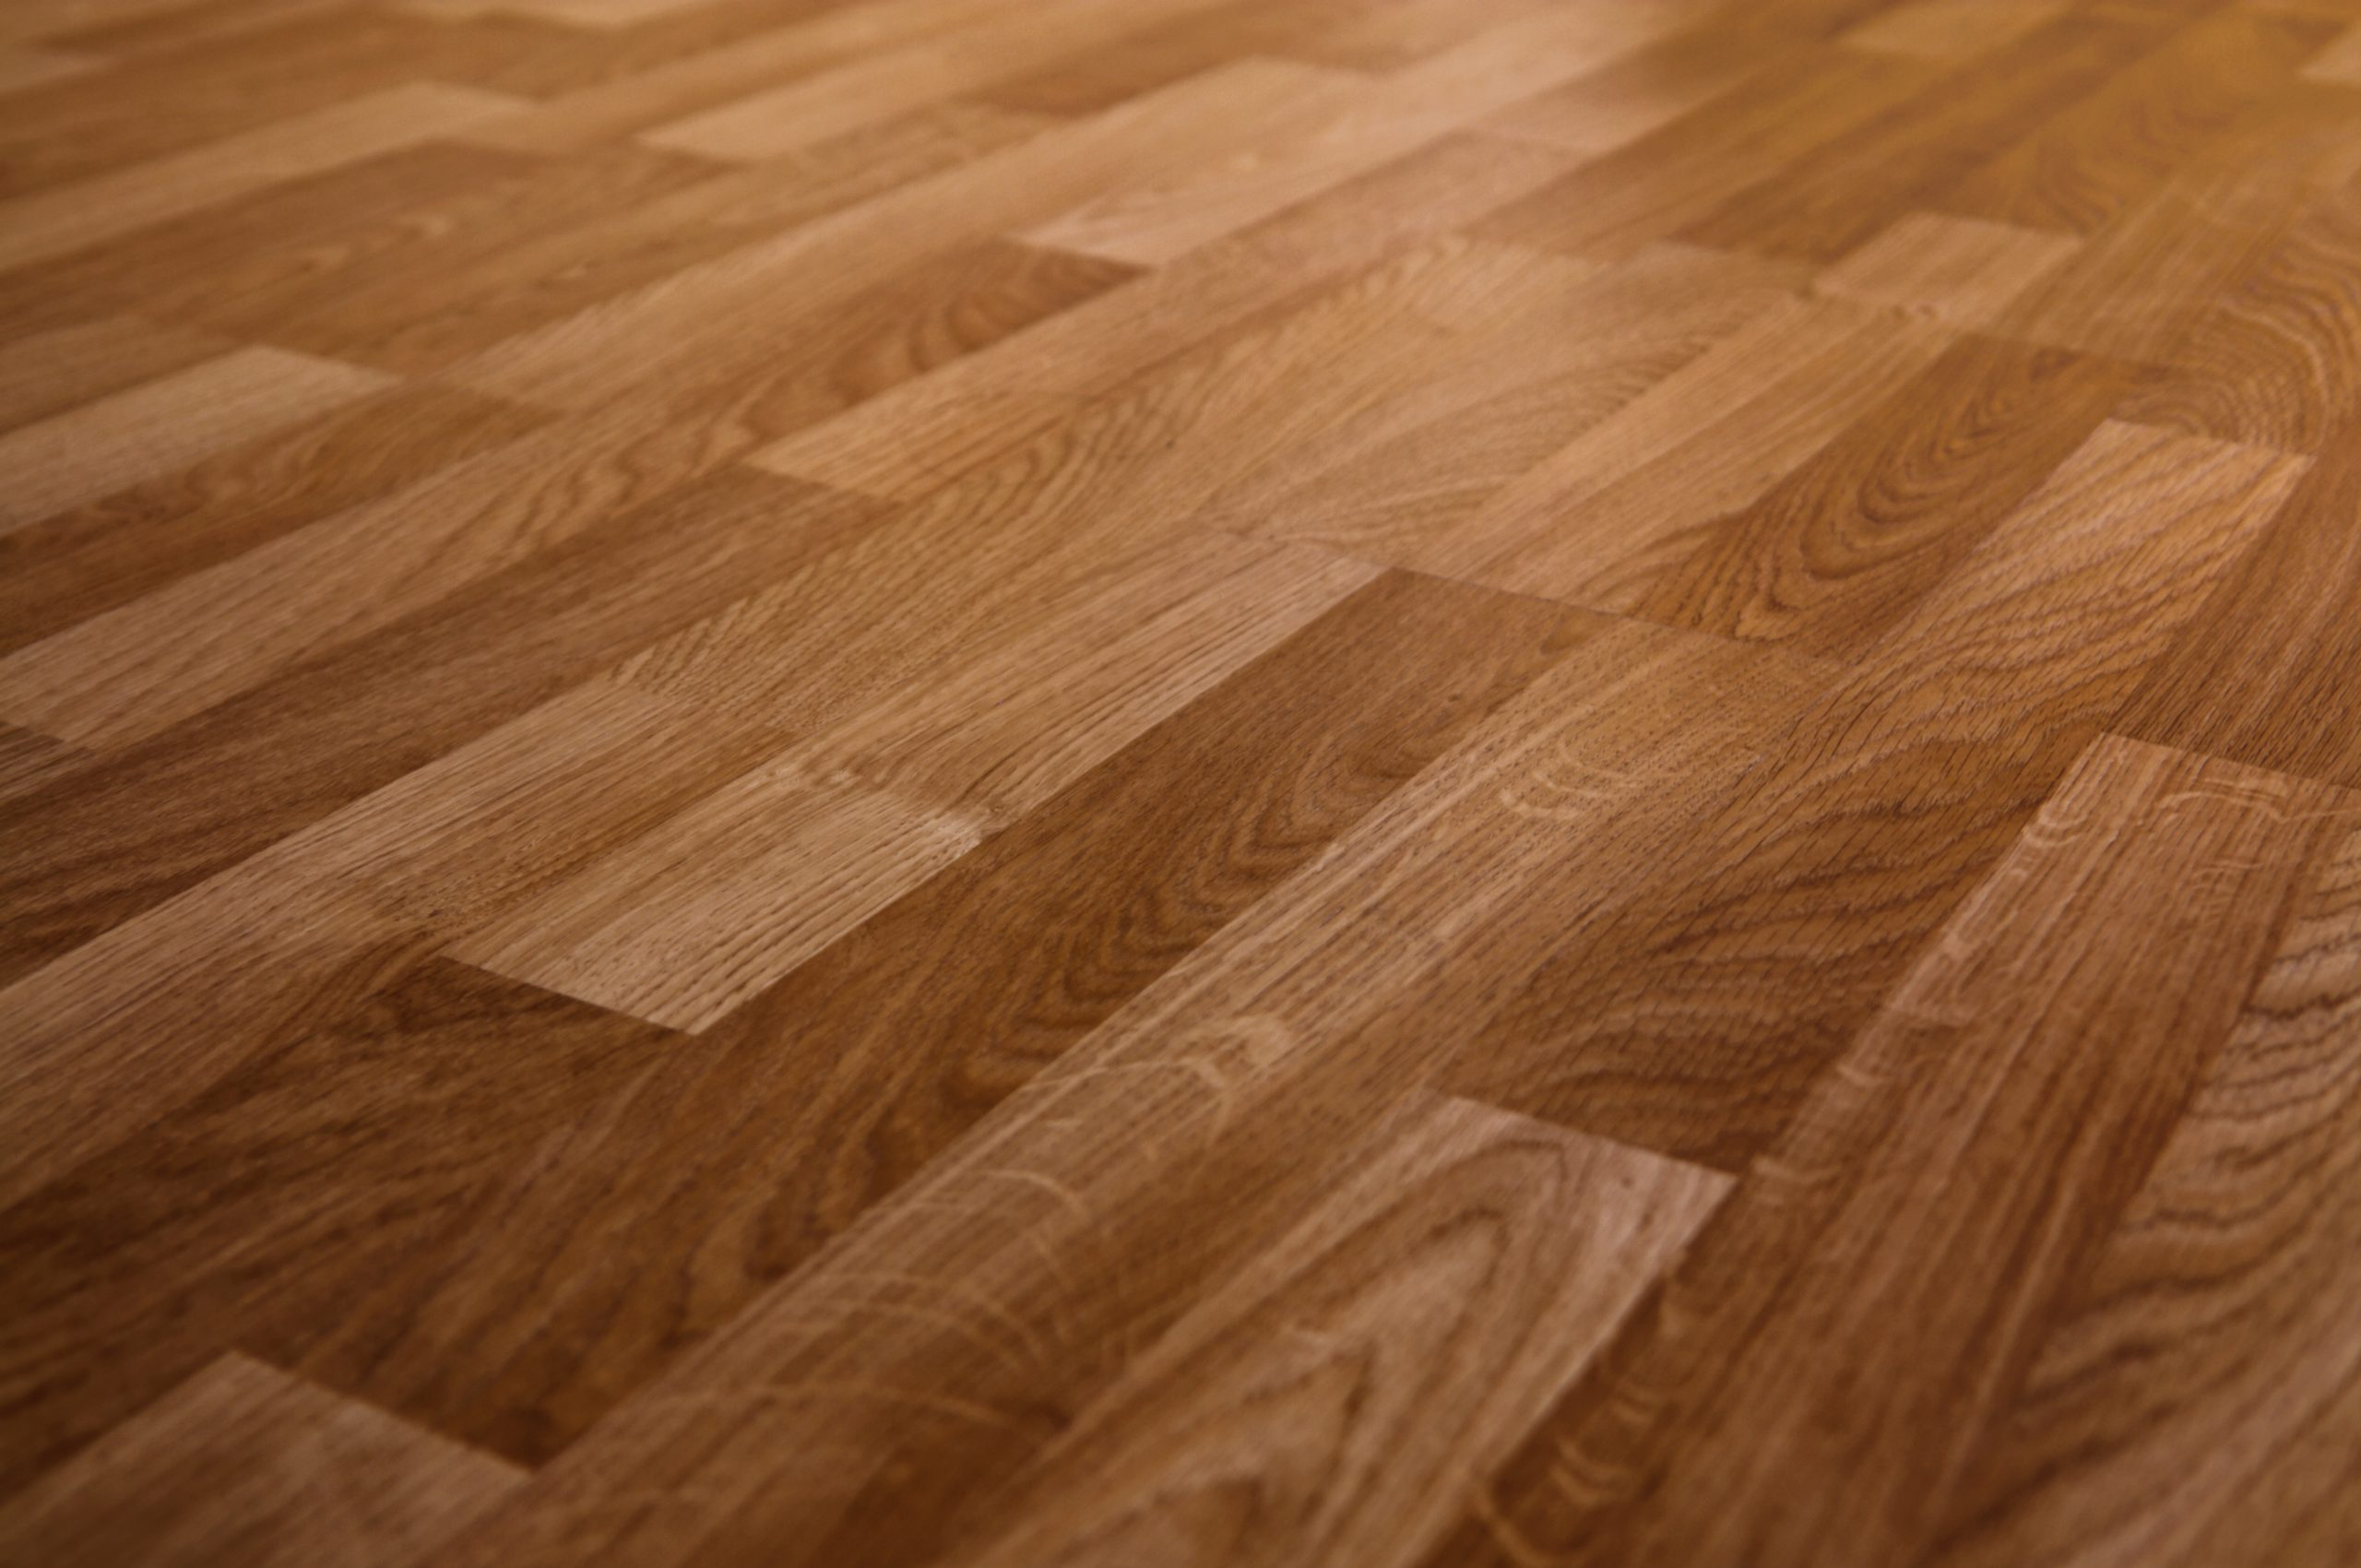 Comparison of SPC flooring with other stuff